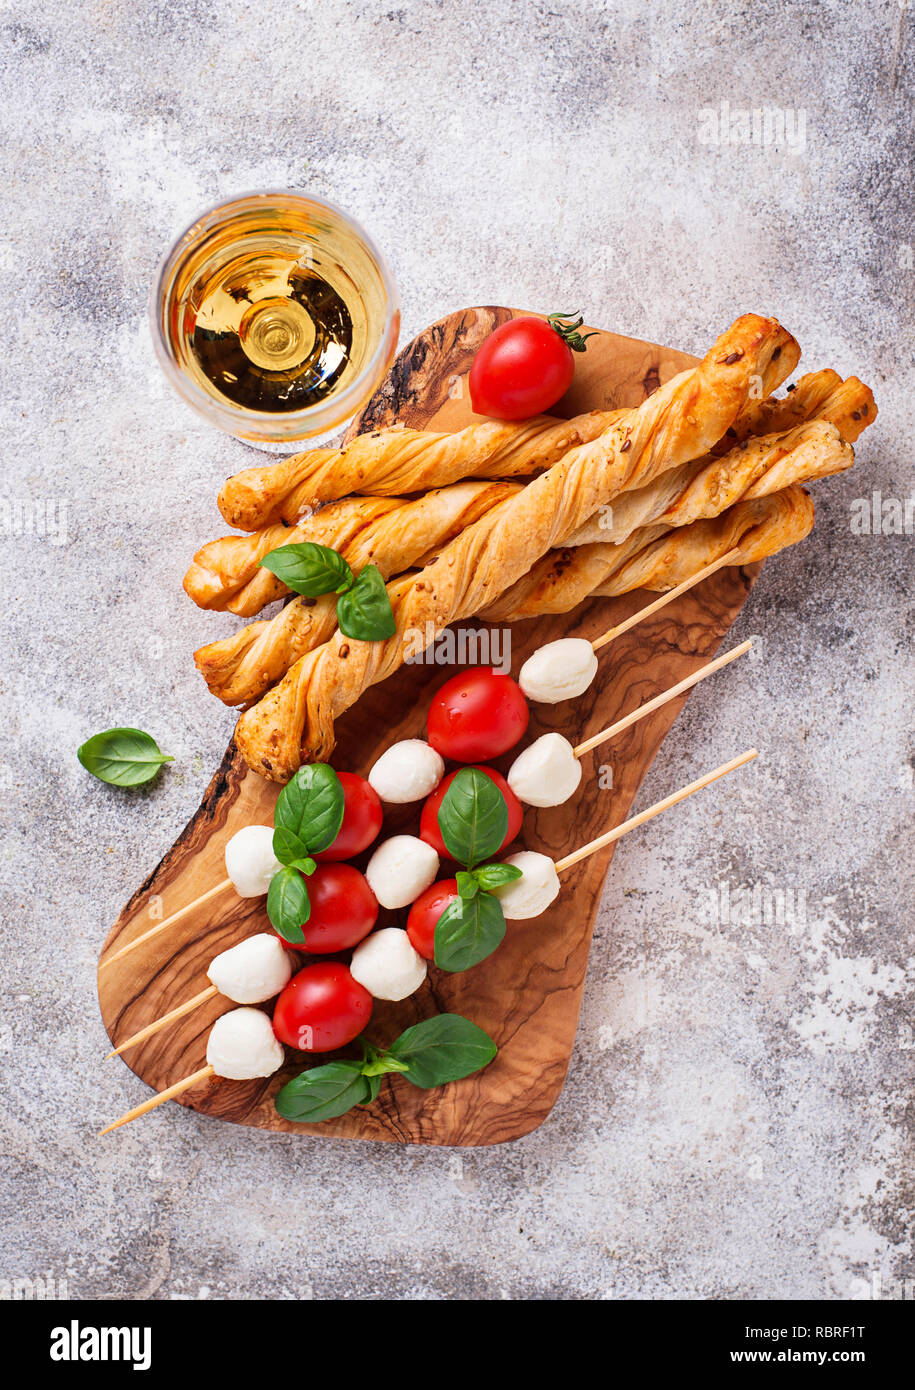 Caprese skewers and grissini bread - Stock Image